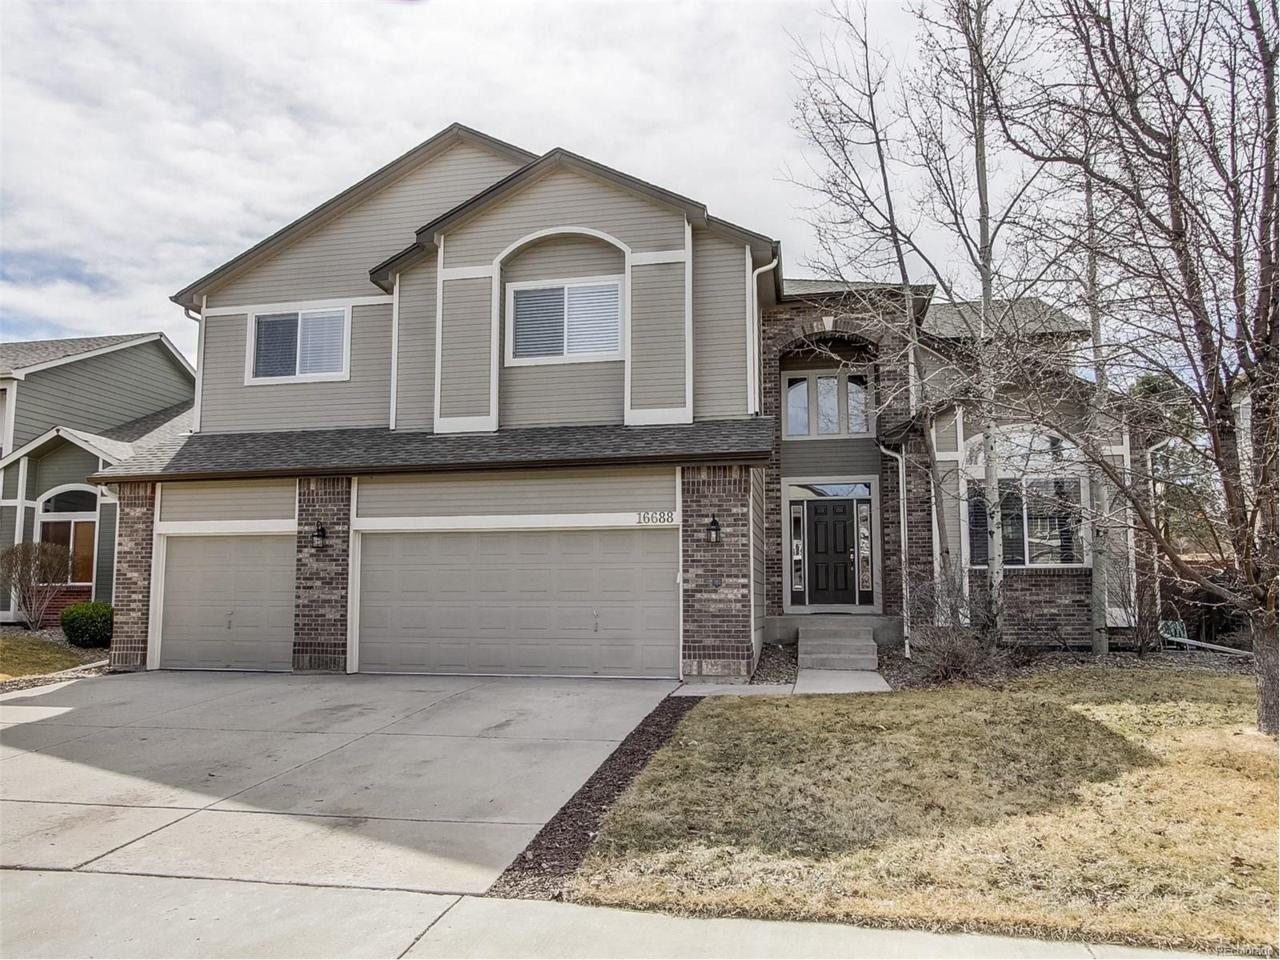 16688 Tin Cup Court, Parker, CO 80134 (MLS #1898686) :: 8z Real Estate